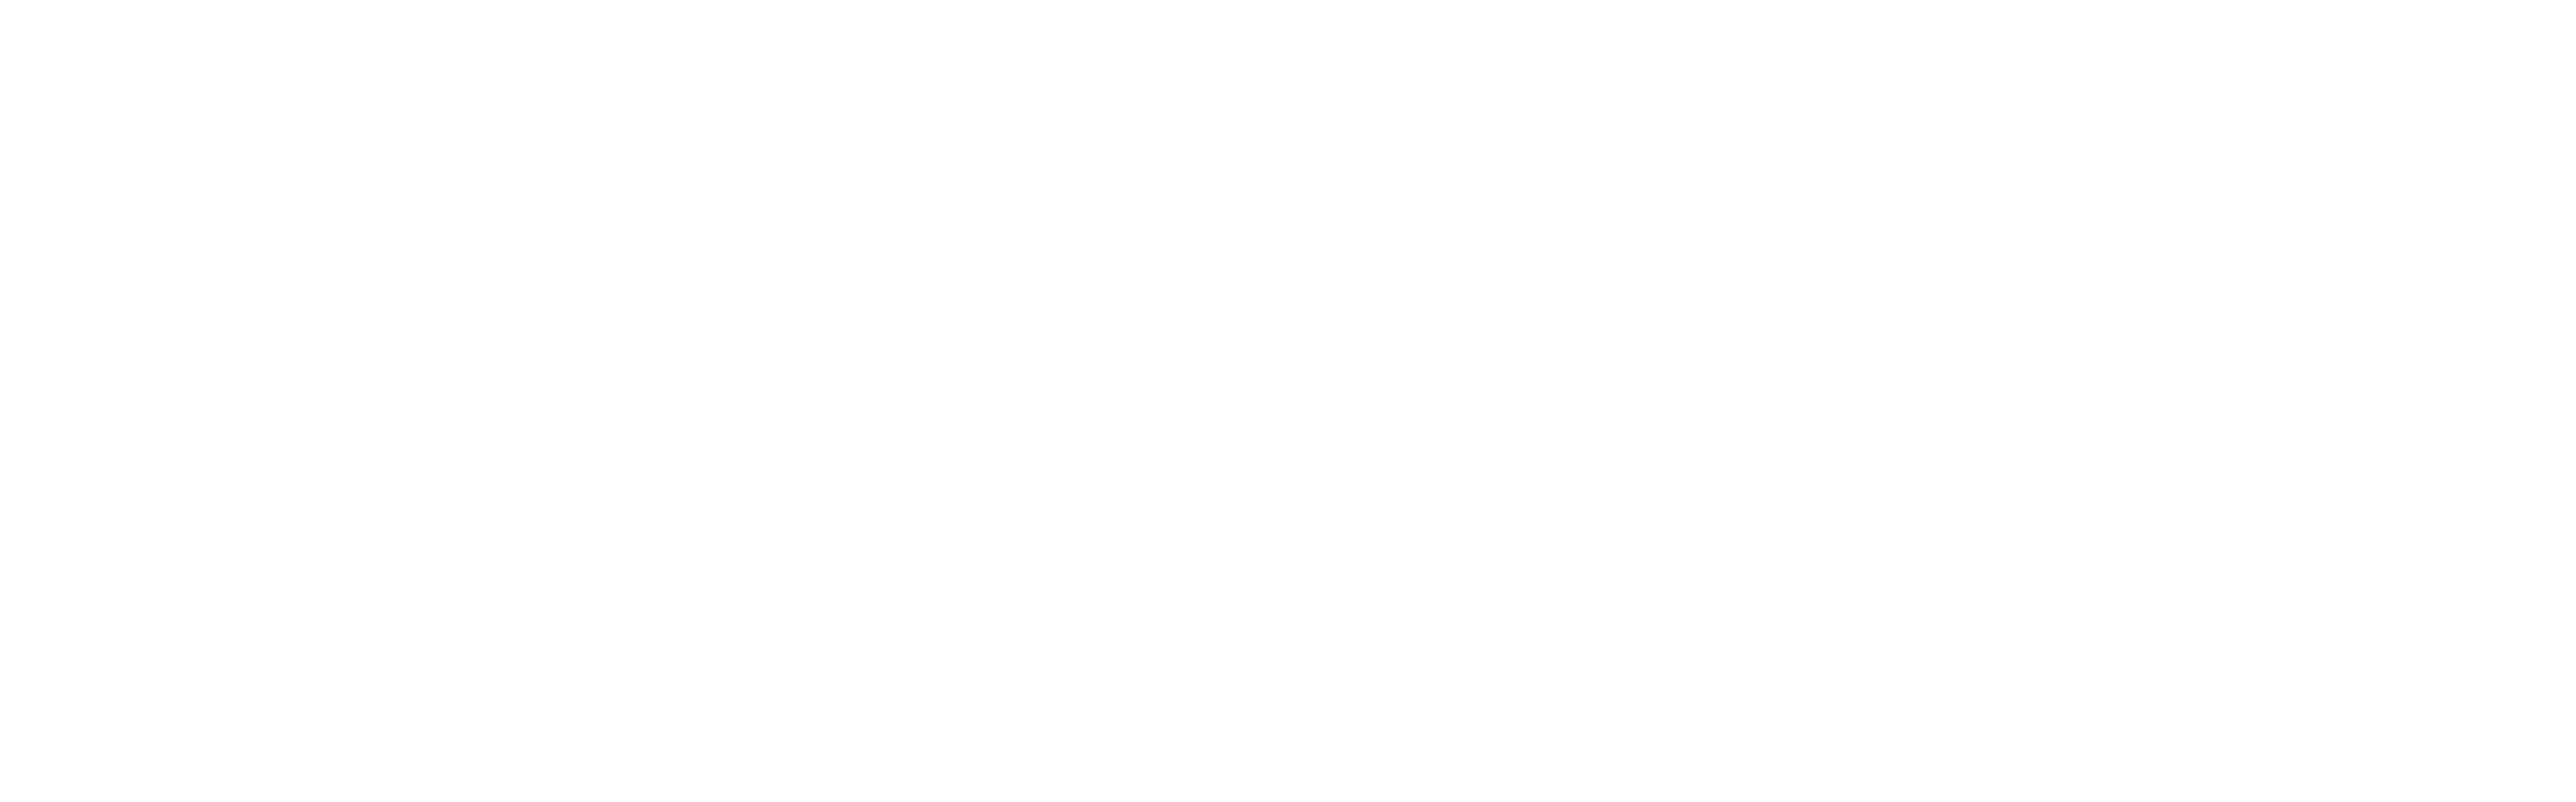 assets/static/images/circle-pattern.png